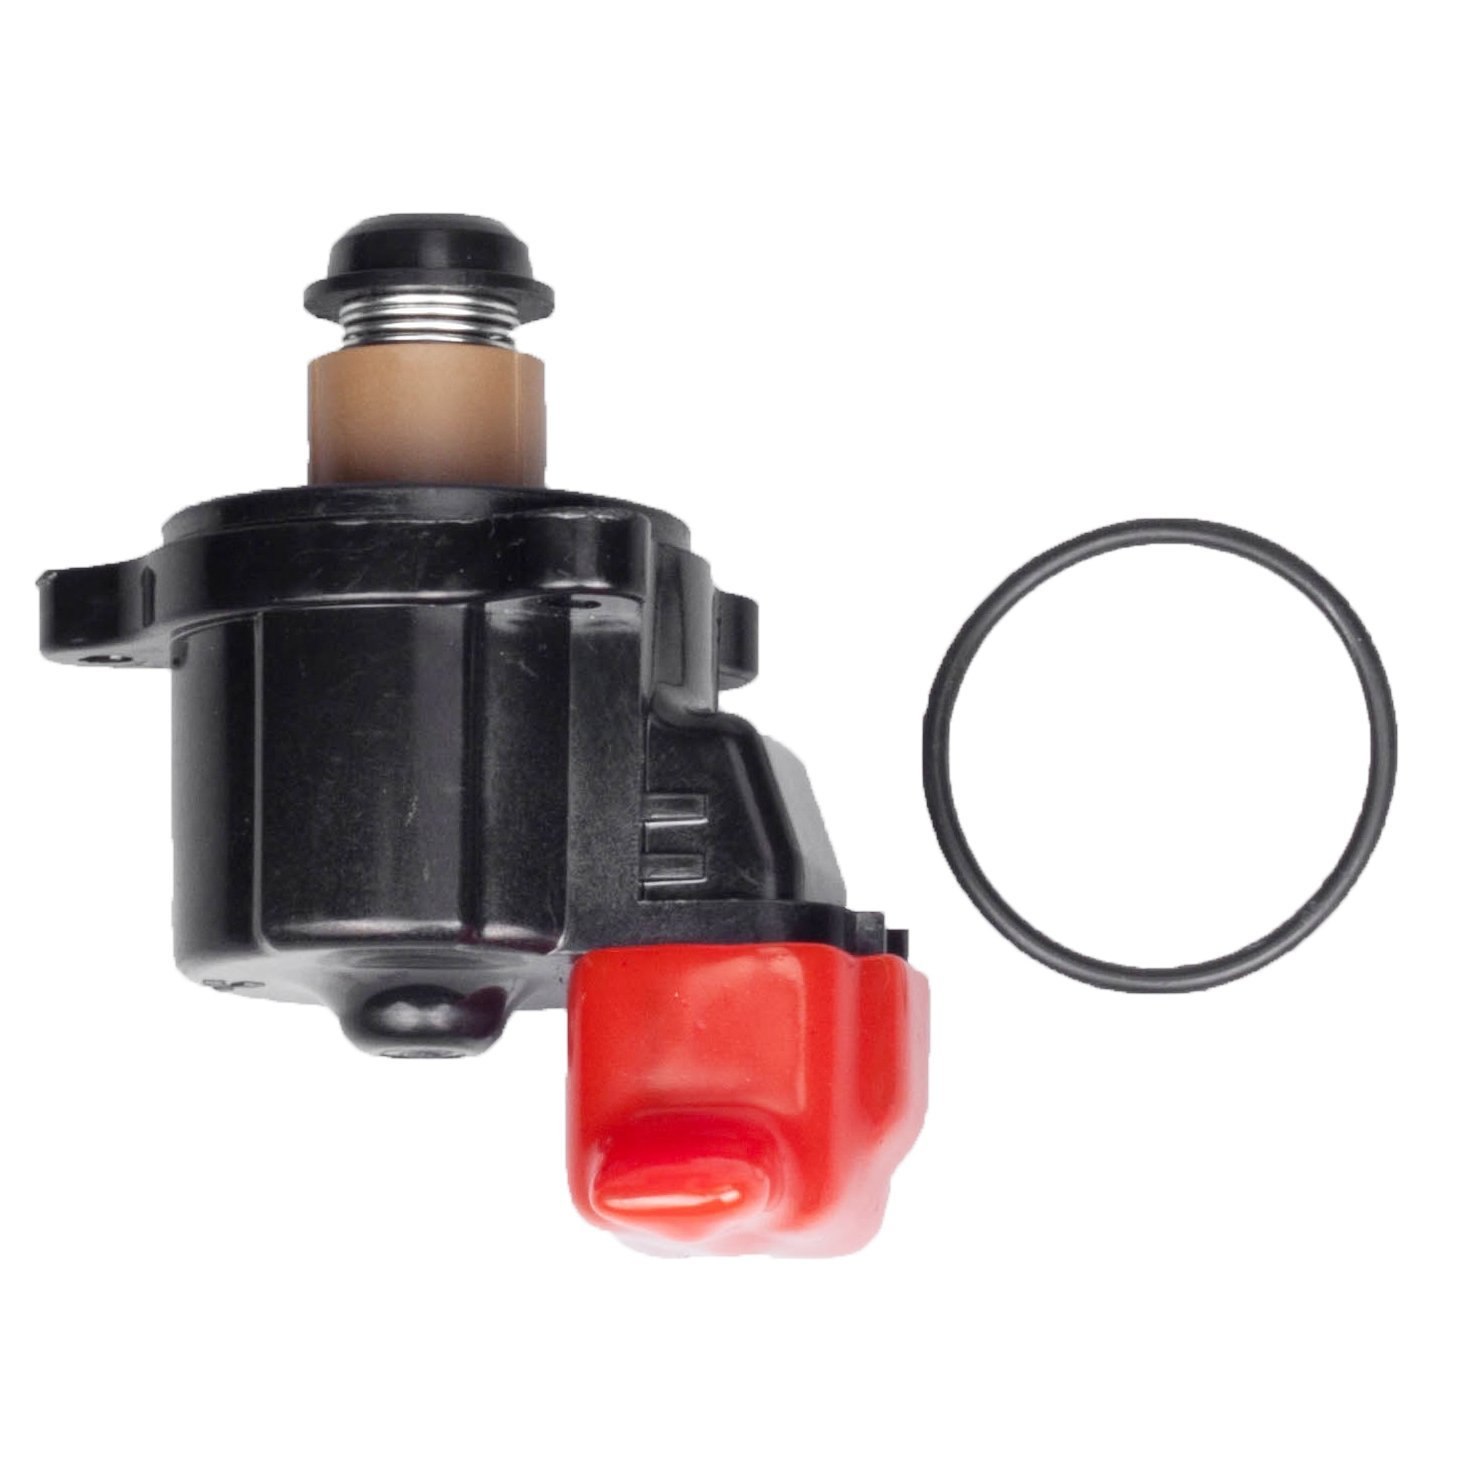 IACV AC508 1813752D00 for Suzuk XL-7 New Idle Air Control Valve